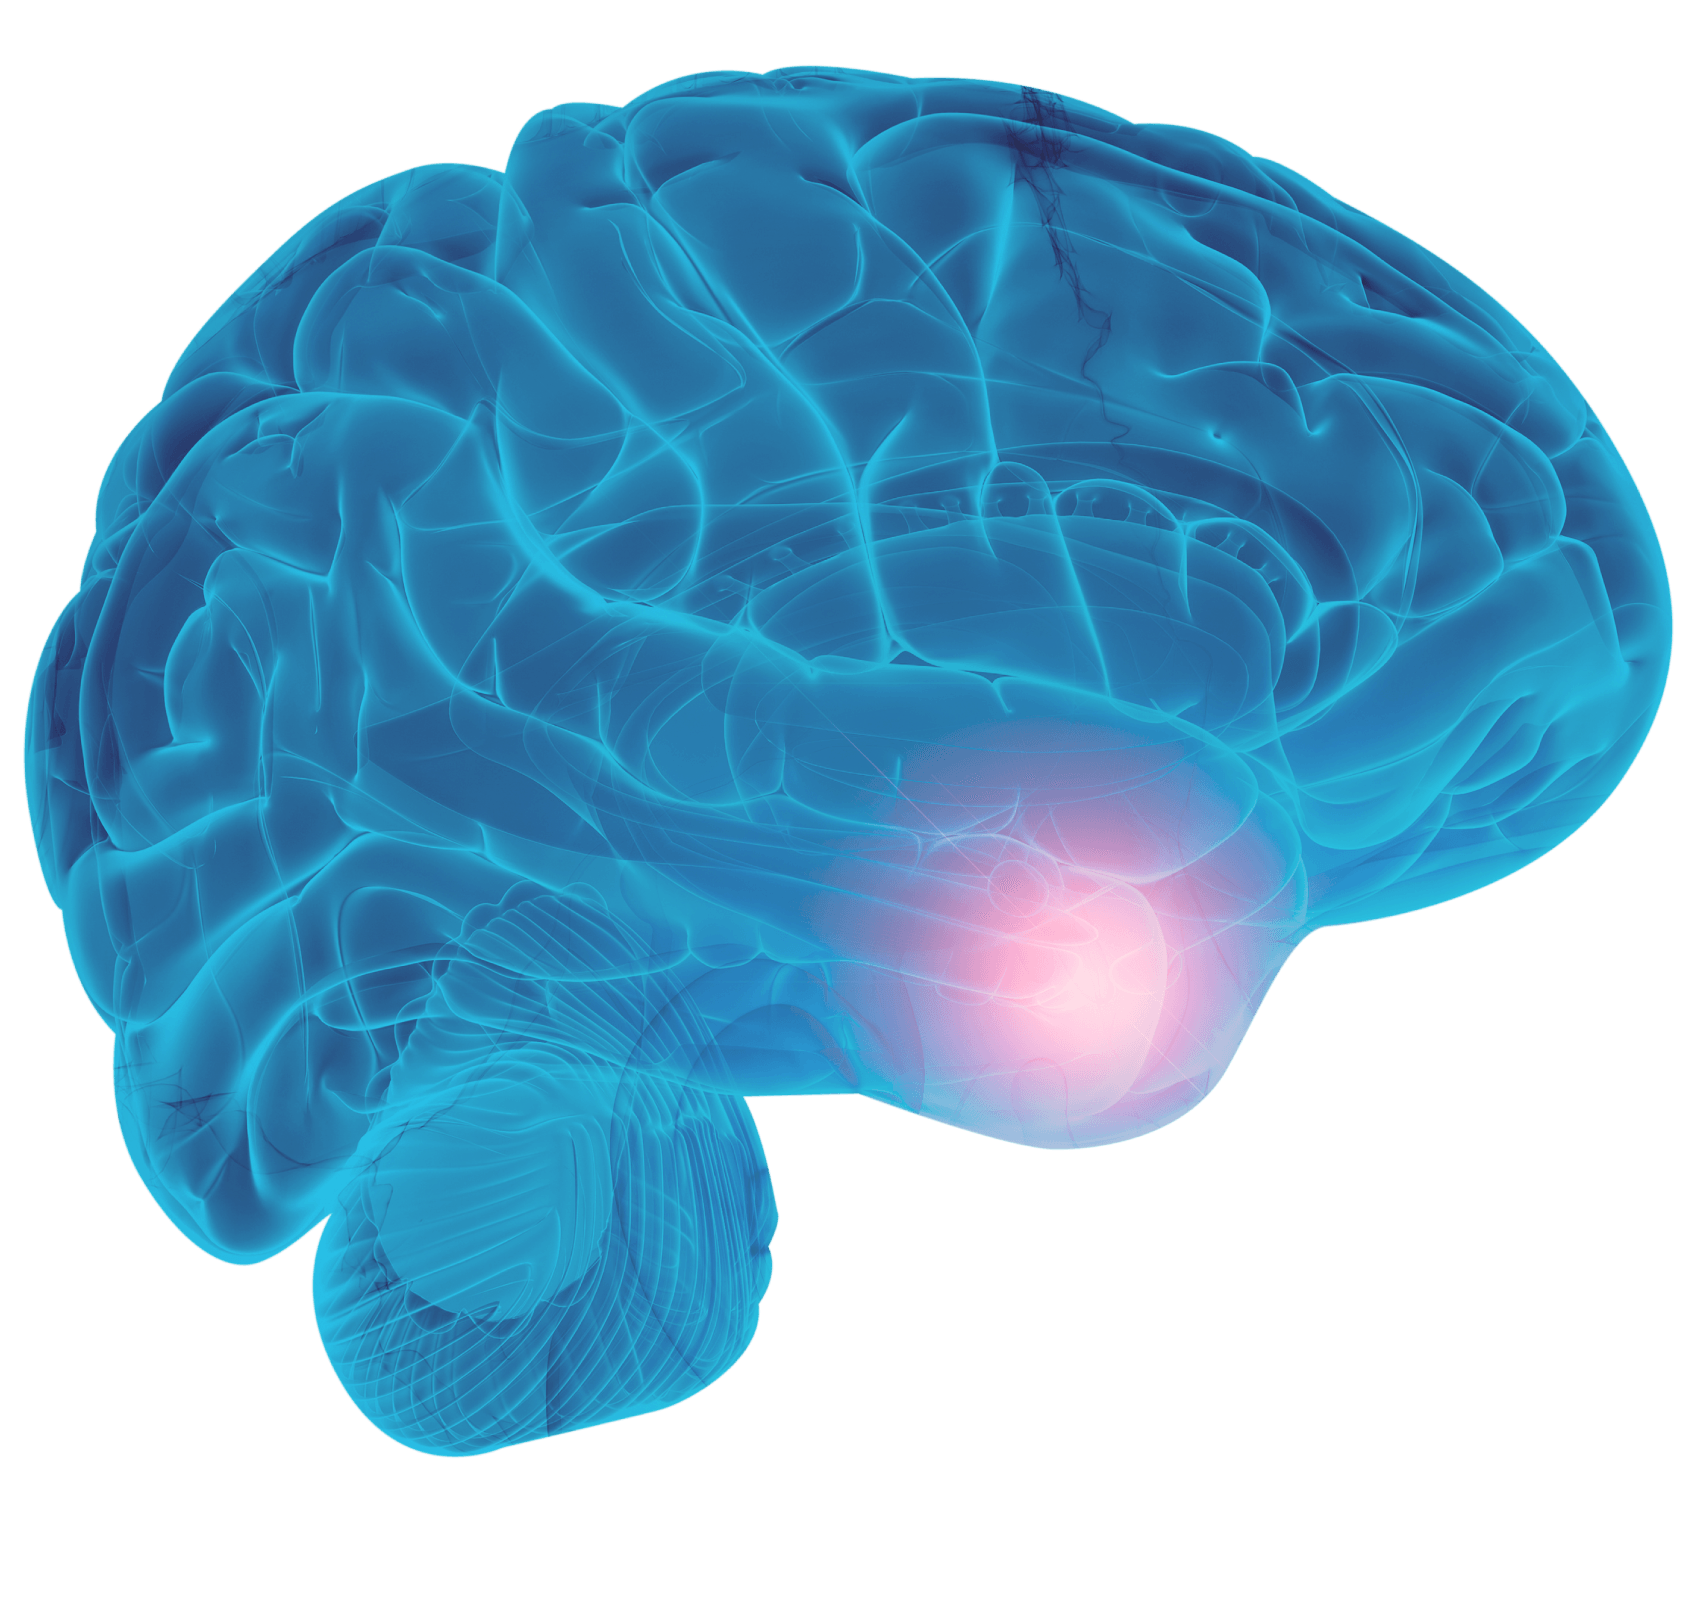 Collaborative imaging Brain Scan